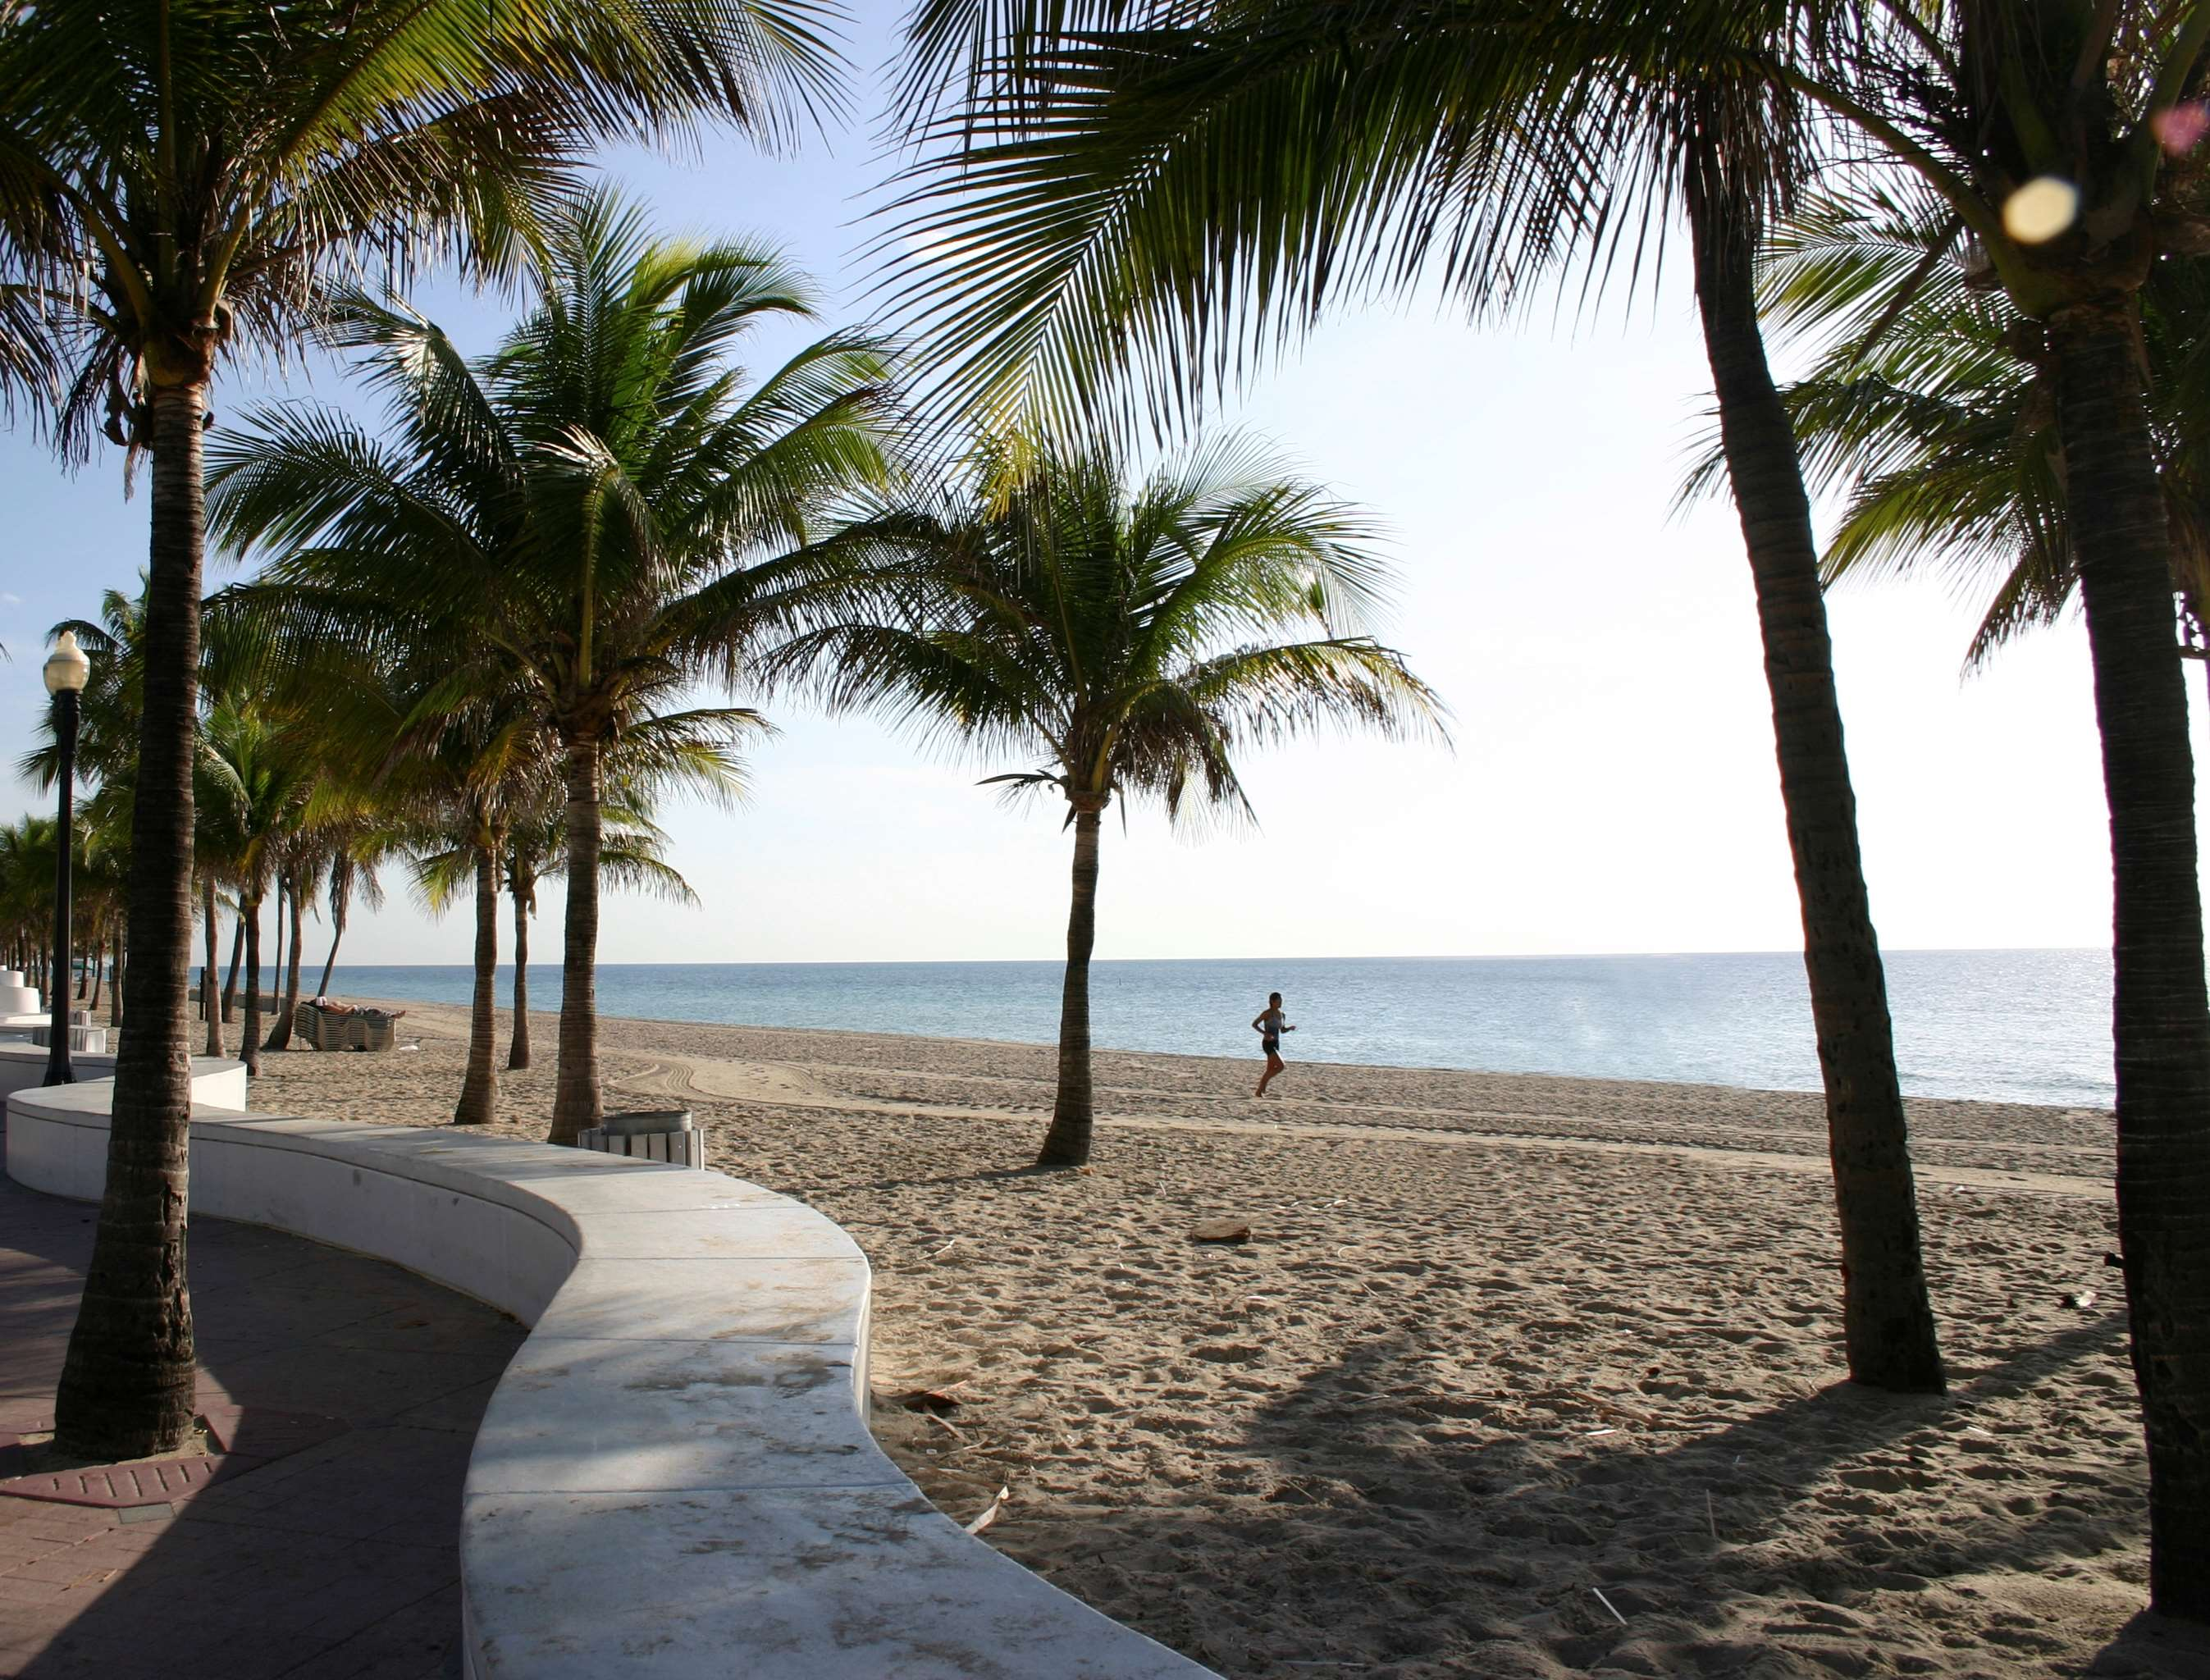 Bahia Mar Fort Lauderdale Beach - a DoubleTree by Hilton Hotel in Fort Lauderdale, FL, photo #10